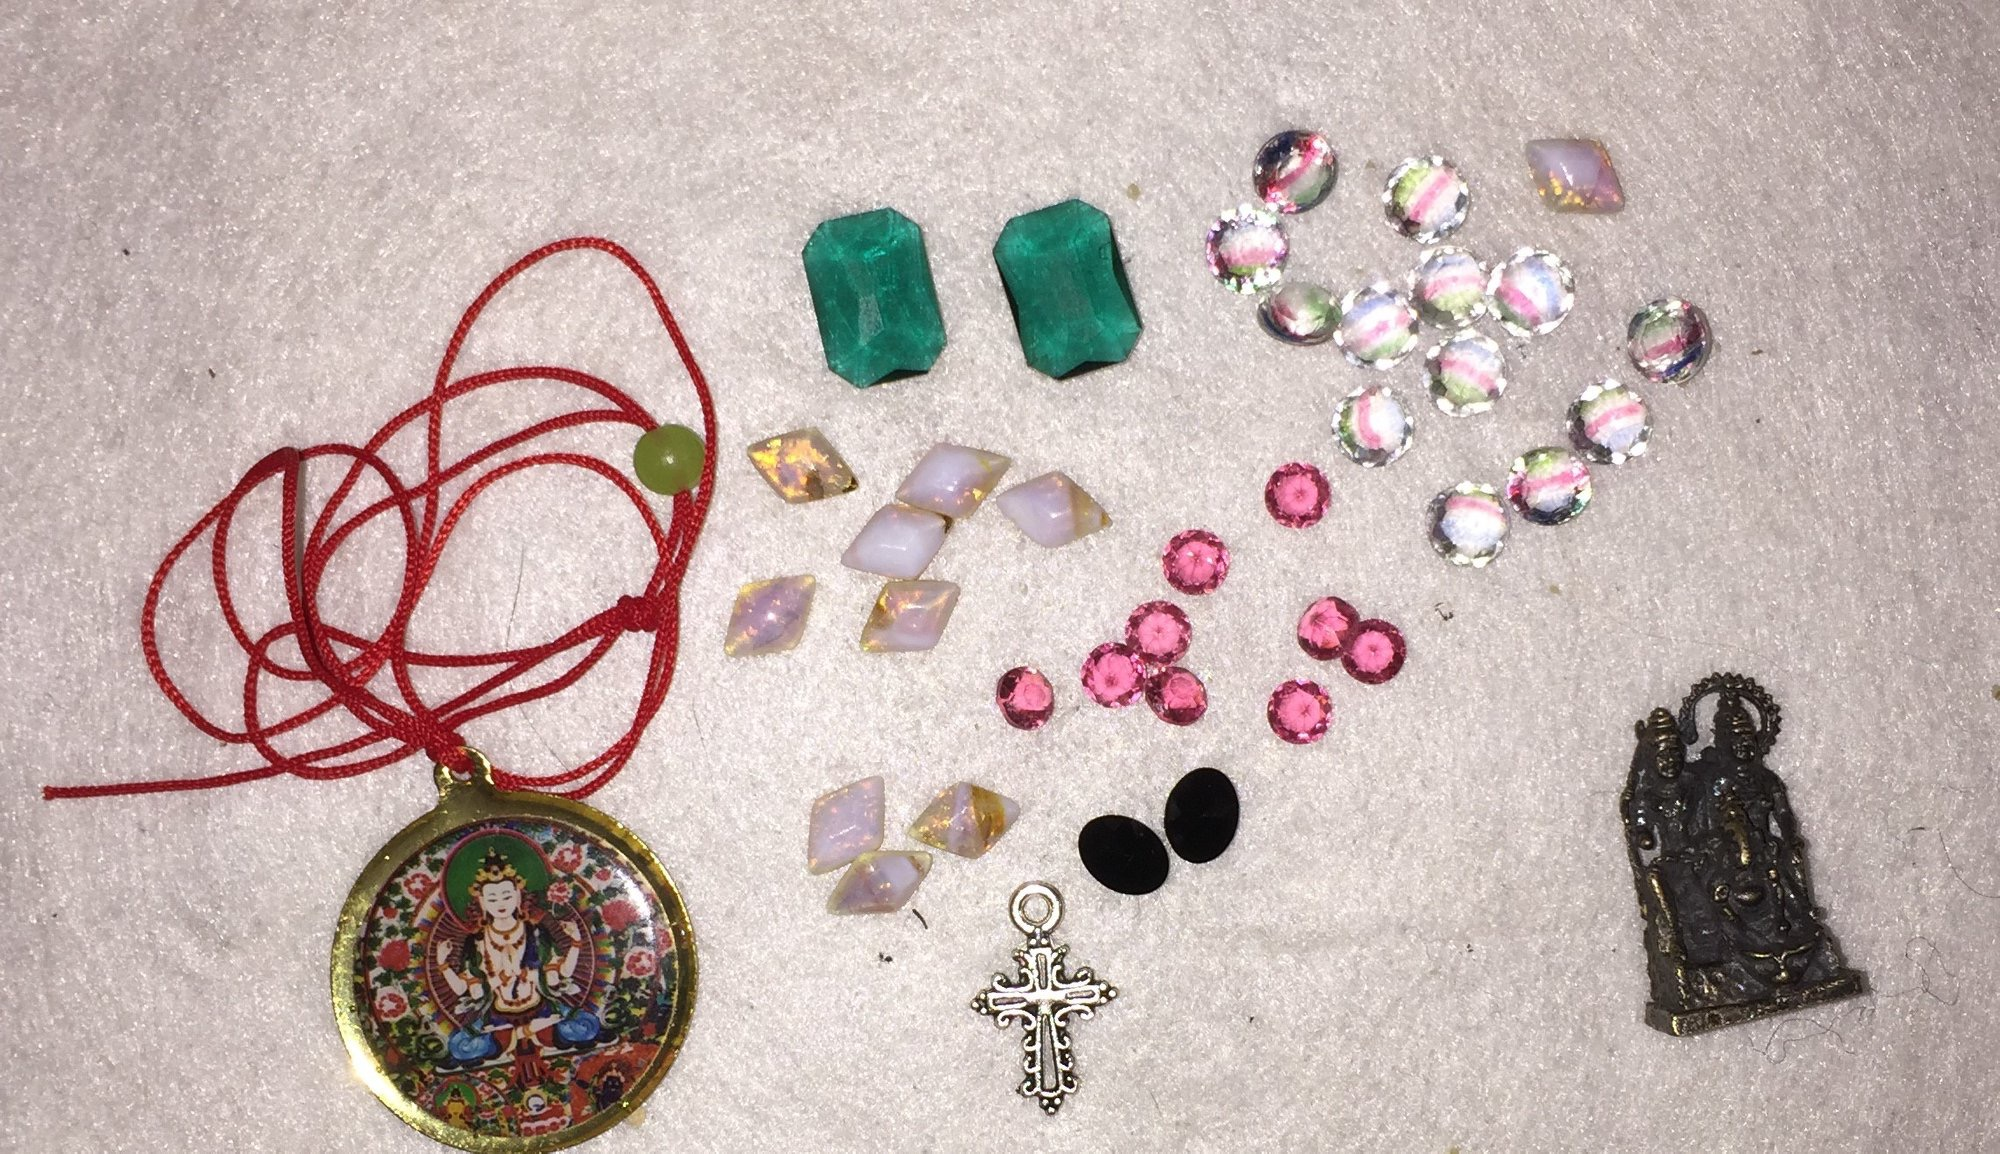 The remarkable items apported during the seance.